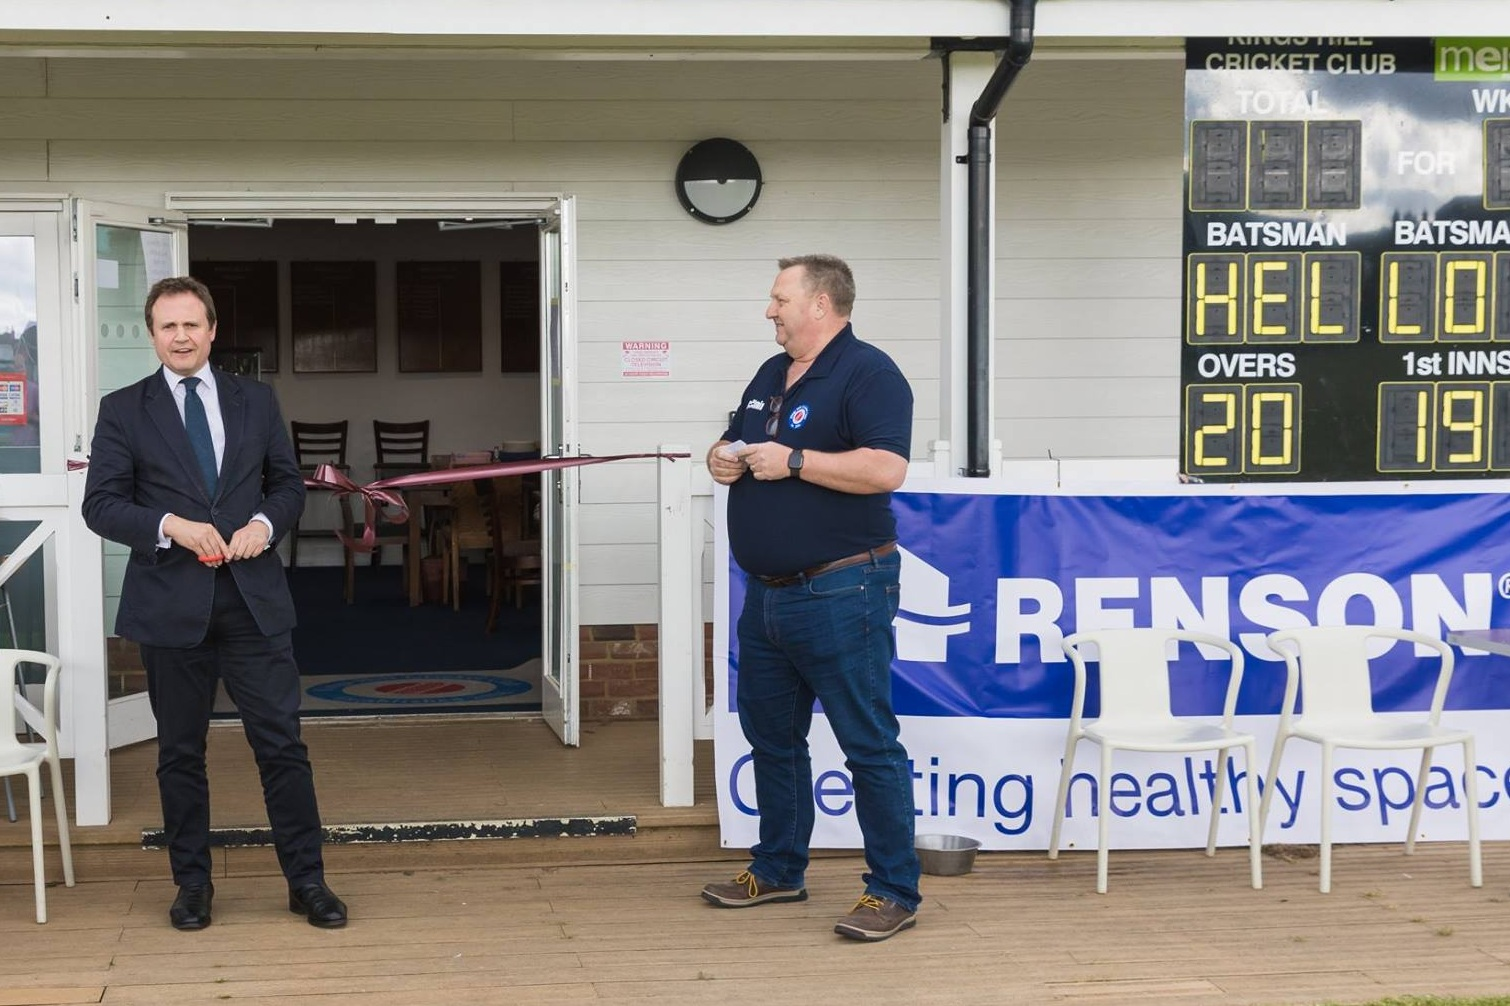 I was delighted to be asked to open  Kings Hill Cricket Club 's new Pavilion. It looks wonderful, and all thanks to the hard-work and dedication of the volunteers who made it possible. It's a fantastic community achievement and I was really pleased to be there.